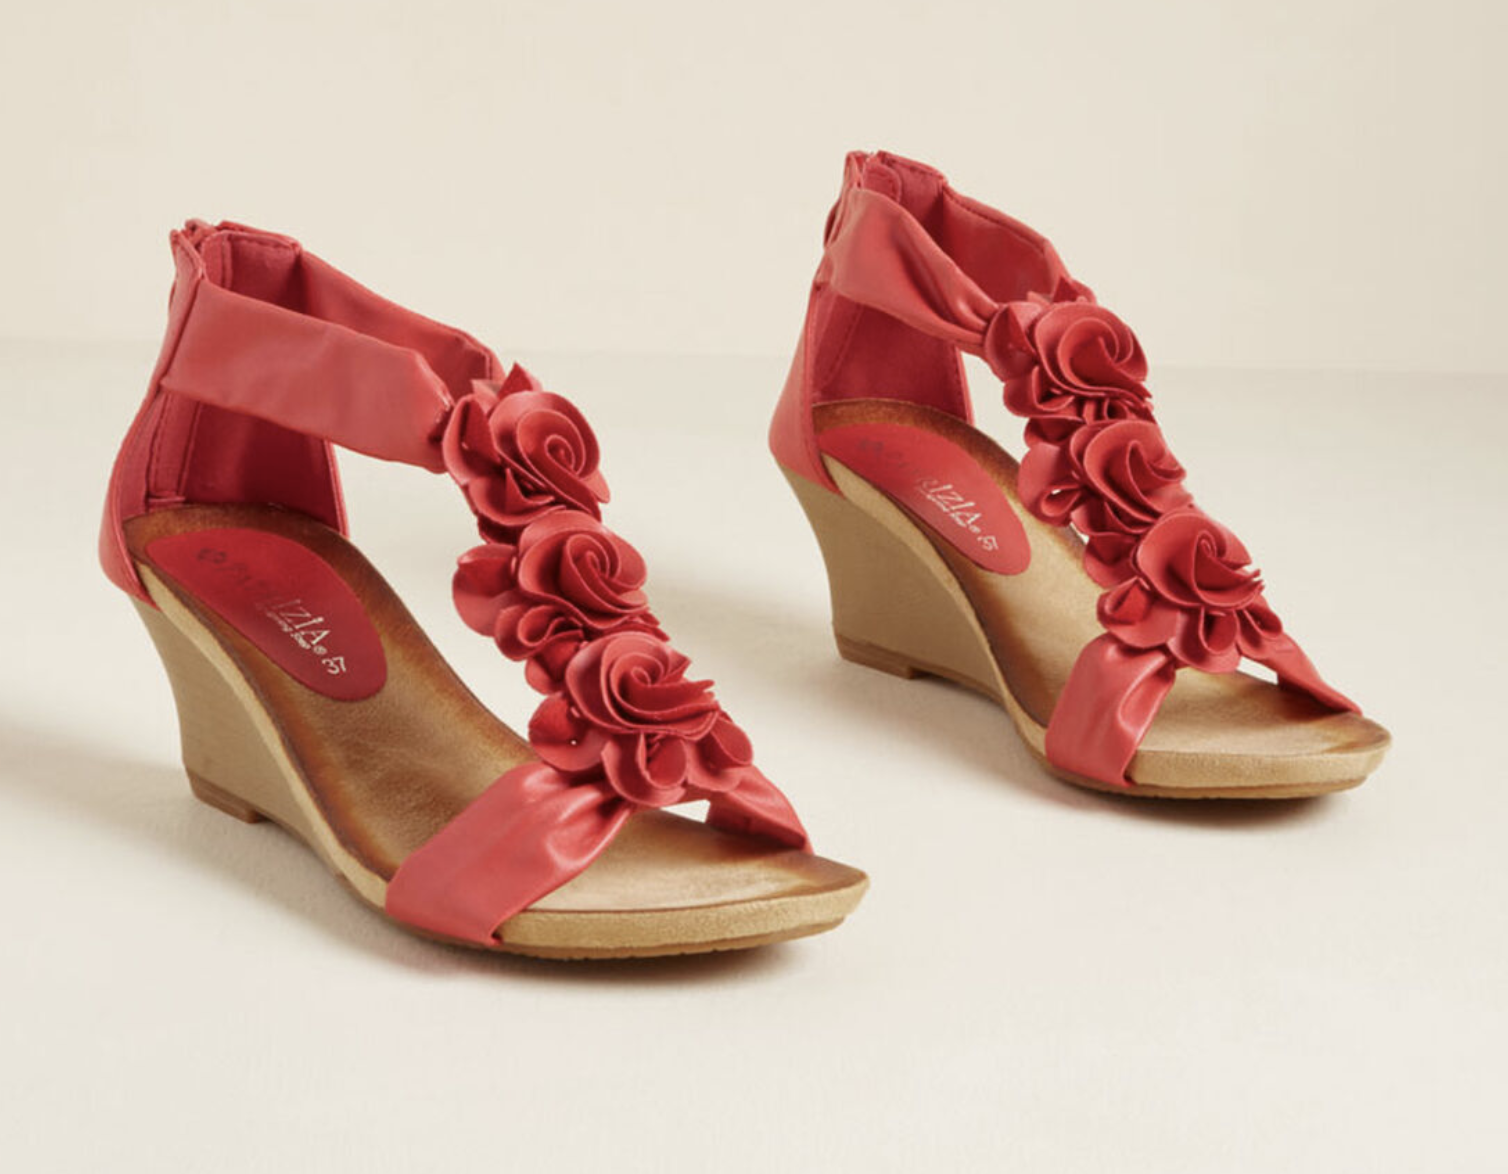 A pair of wedge heeled sandals with red rose detailing on the top of the foot